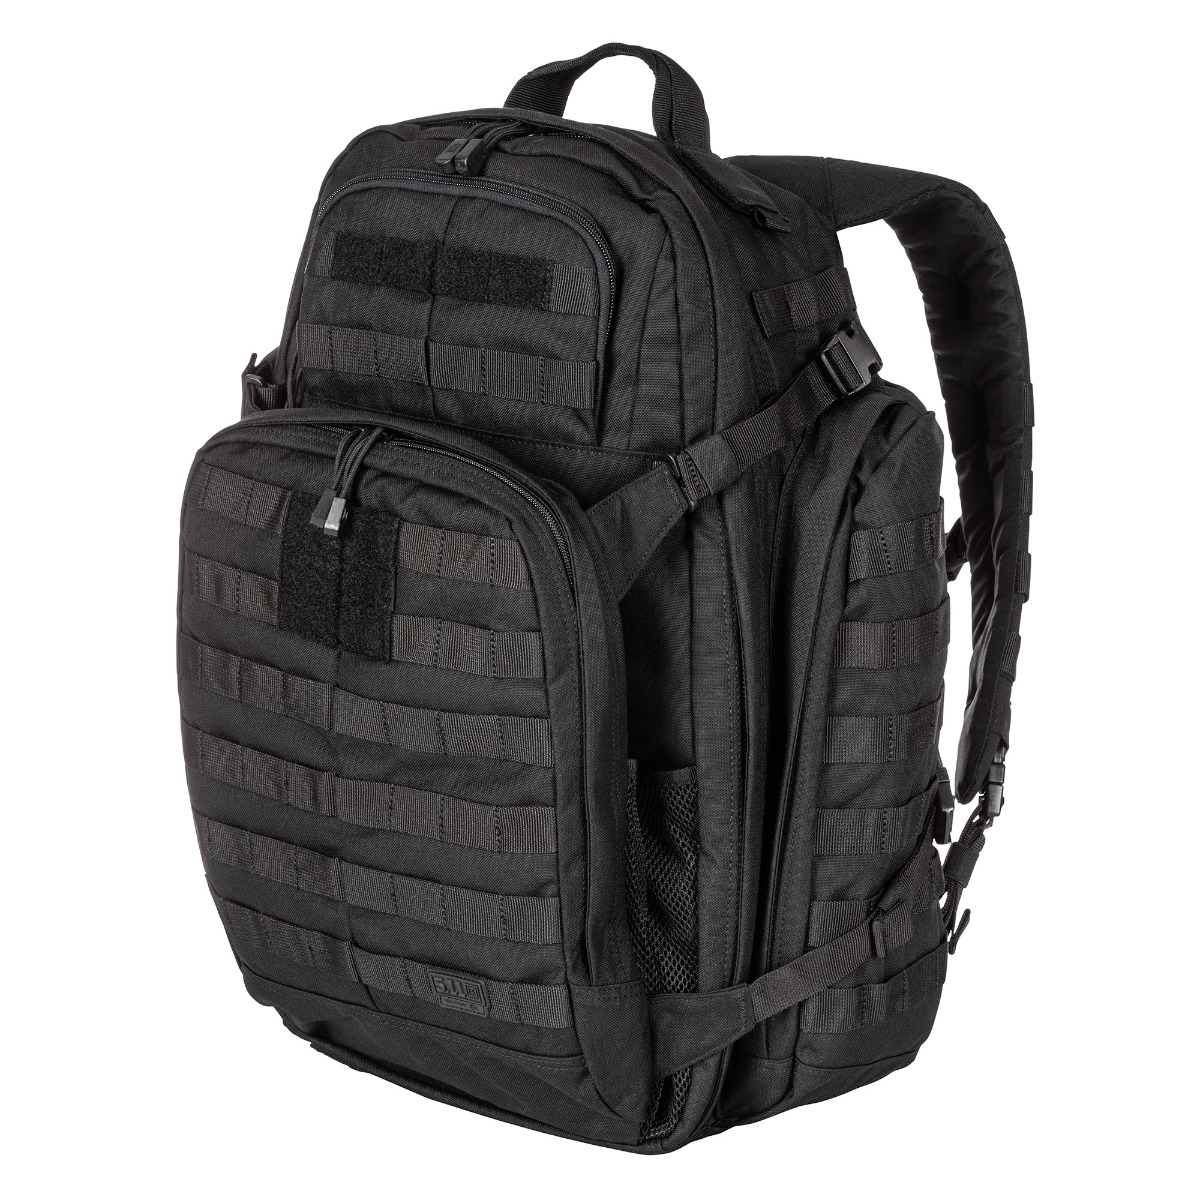 775f878c Bug Out Bag RUSH 72 Hour Backpack - 5.11 Tactical